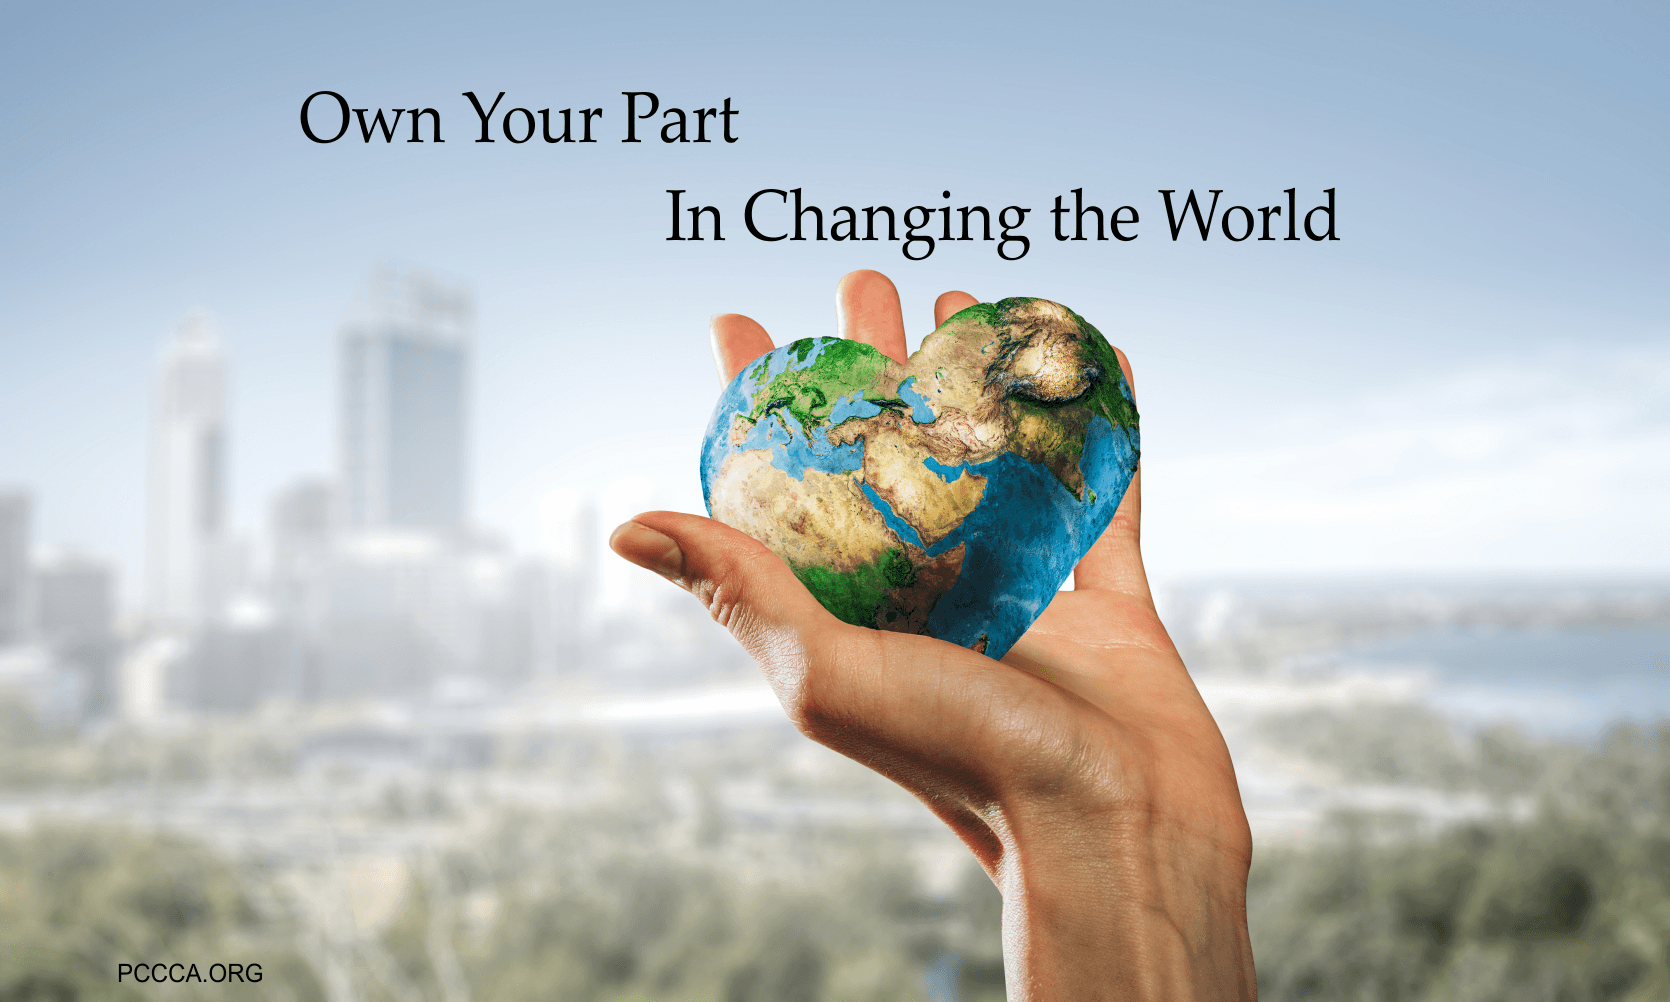 Own Your Part In Changing The World at https://pccca.org